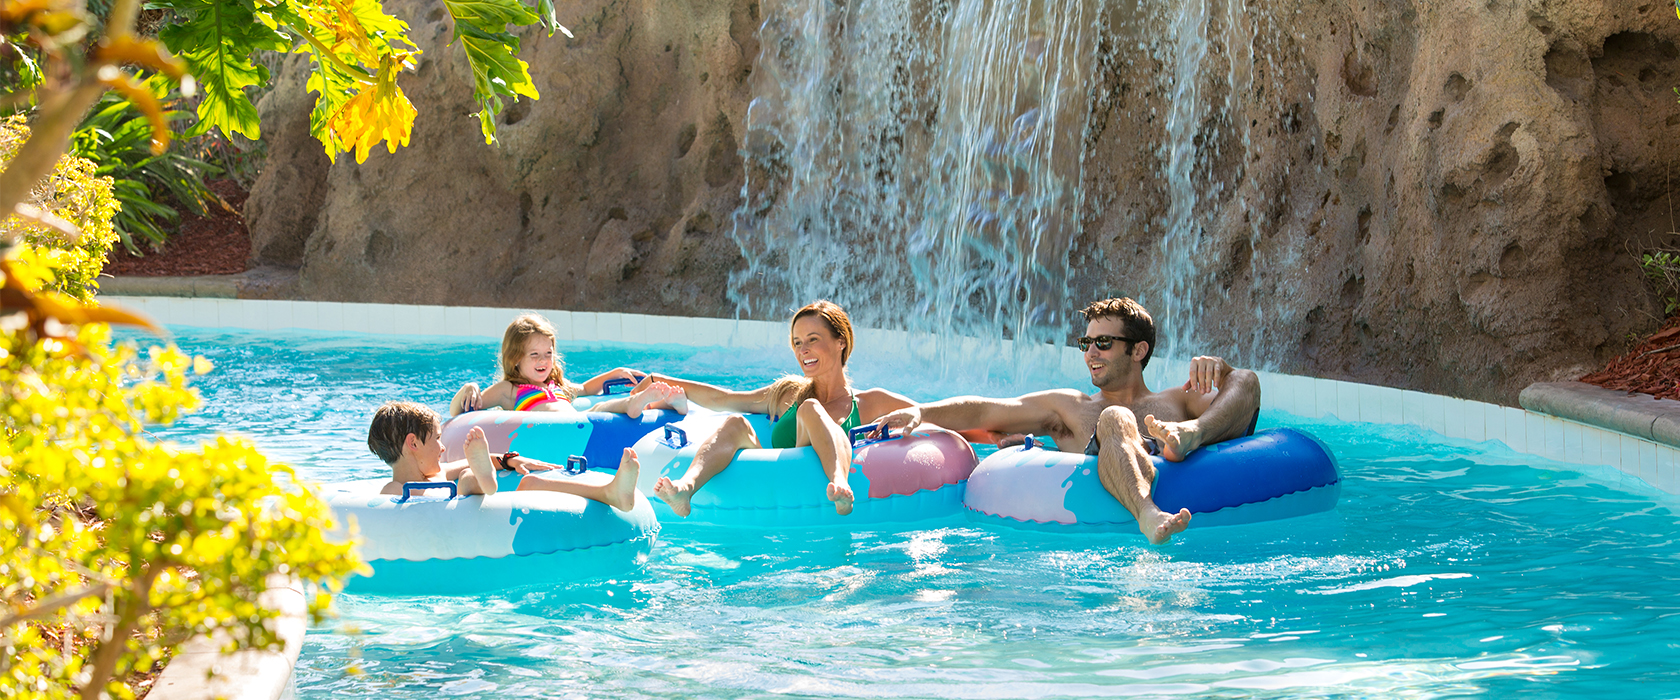 Summer Breakfast Package Orlando Splash LIMITED TIME - Save $25/Day